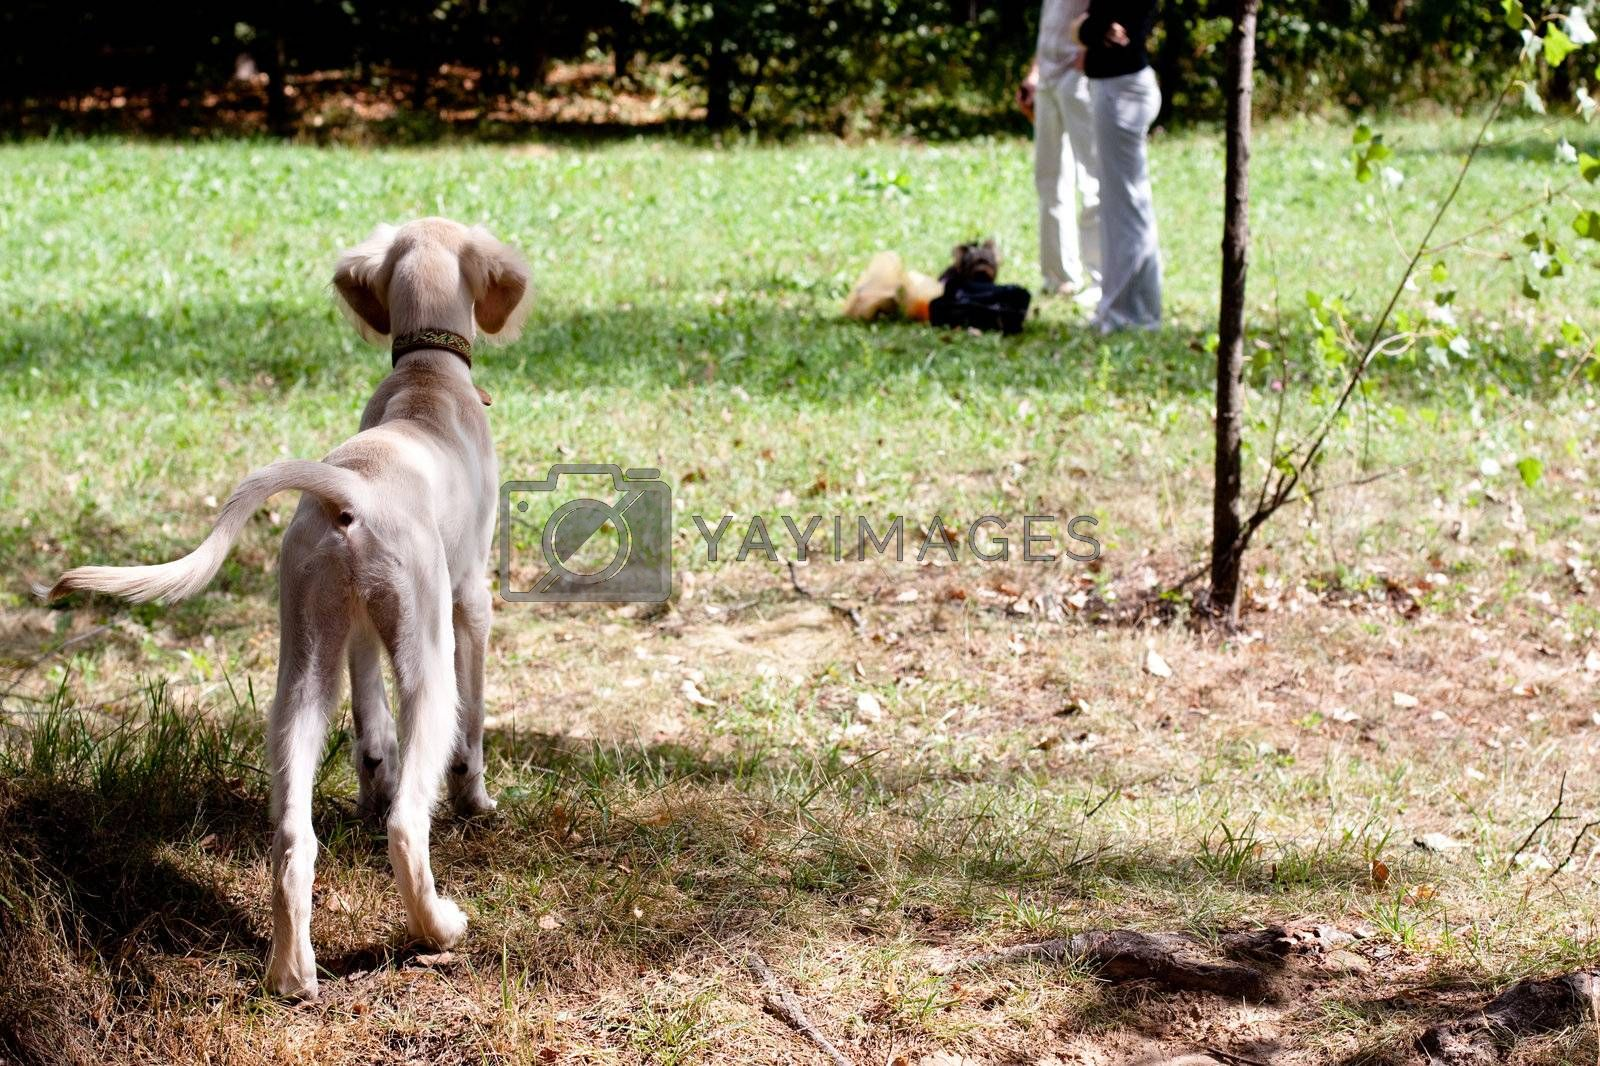 A standing saluki pup in a green field and two people in the distance